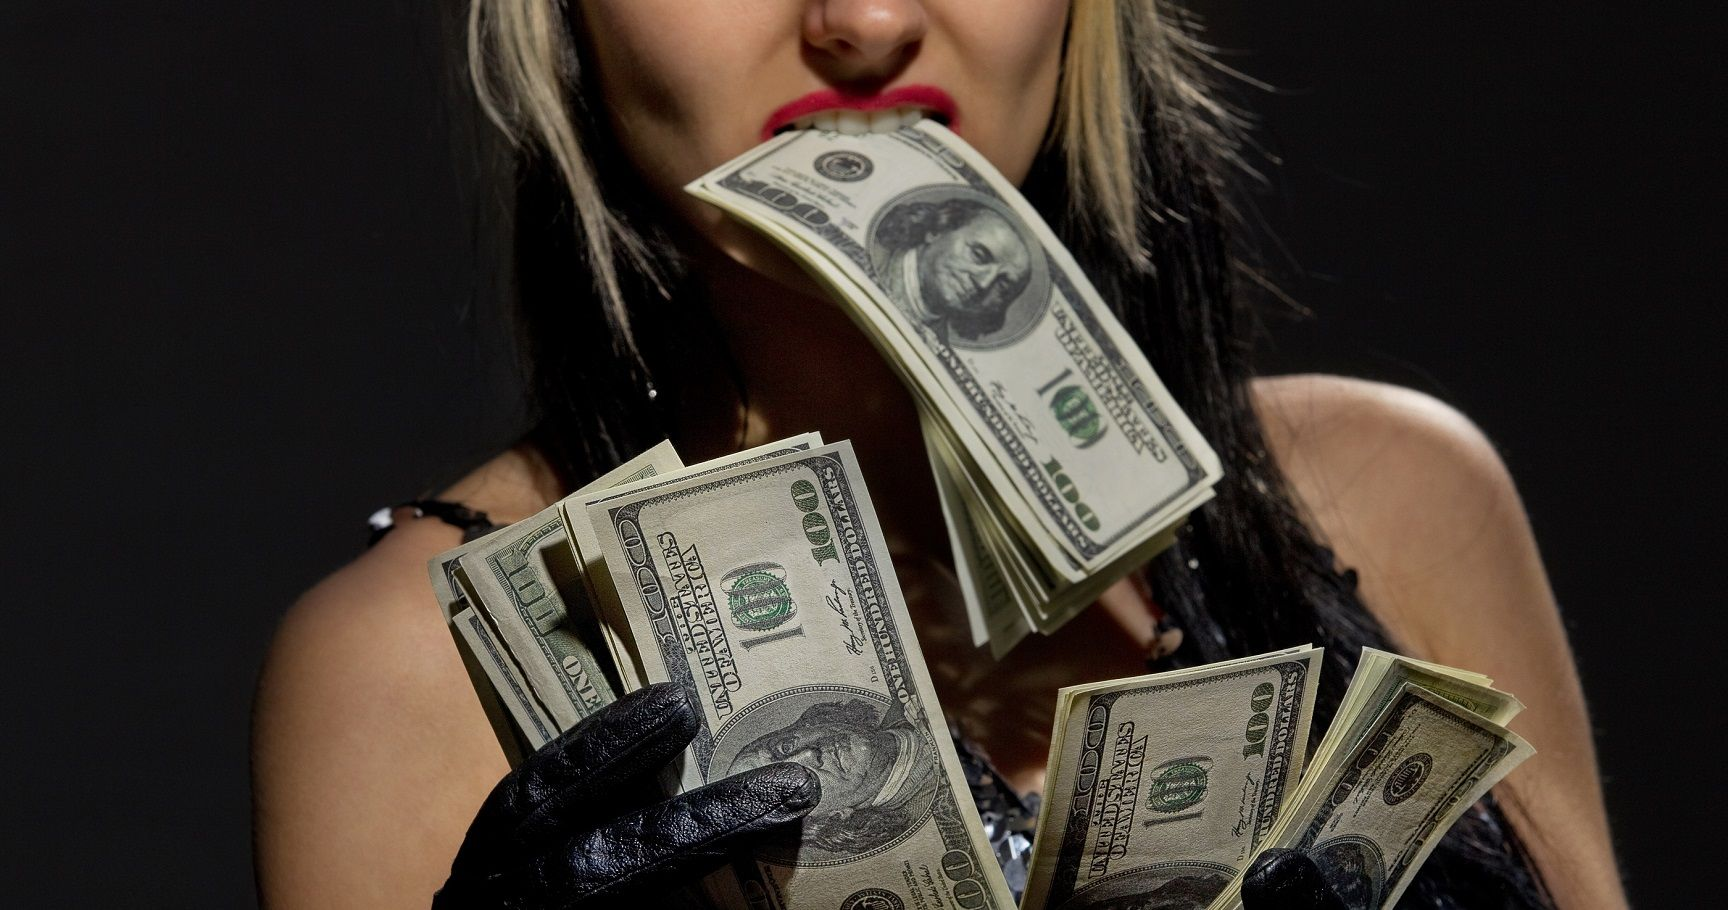 10 Strange Facts That Will Change How You Look At Money